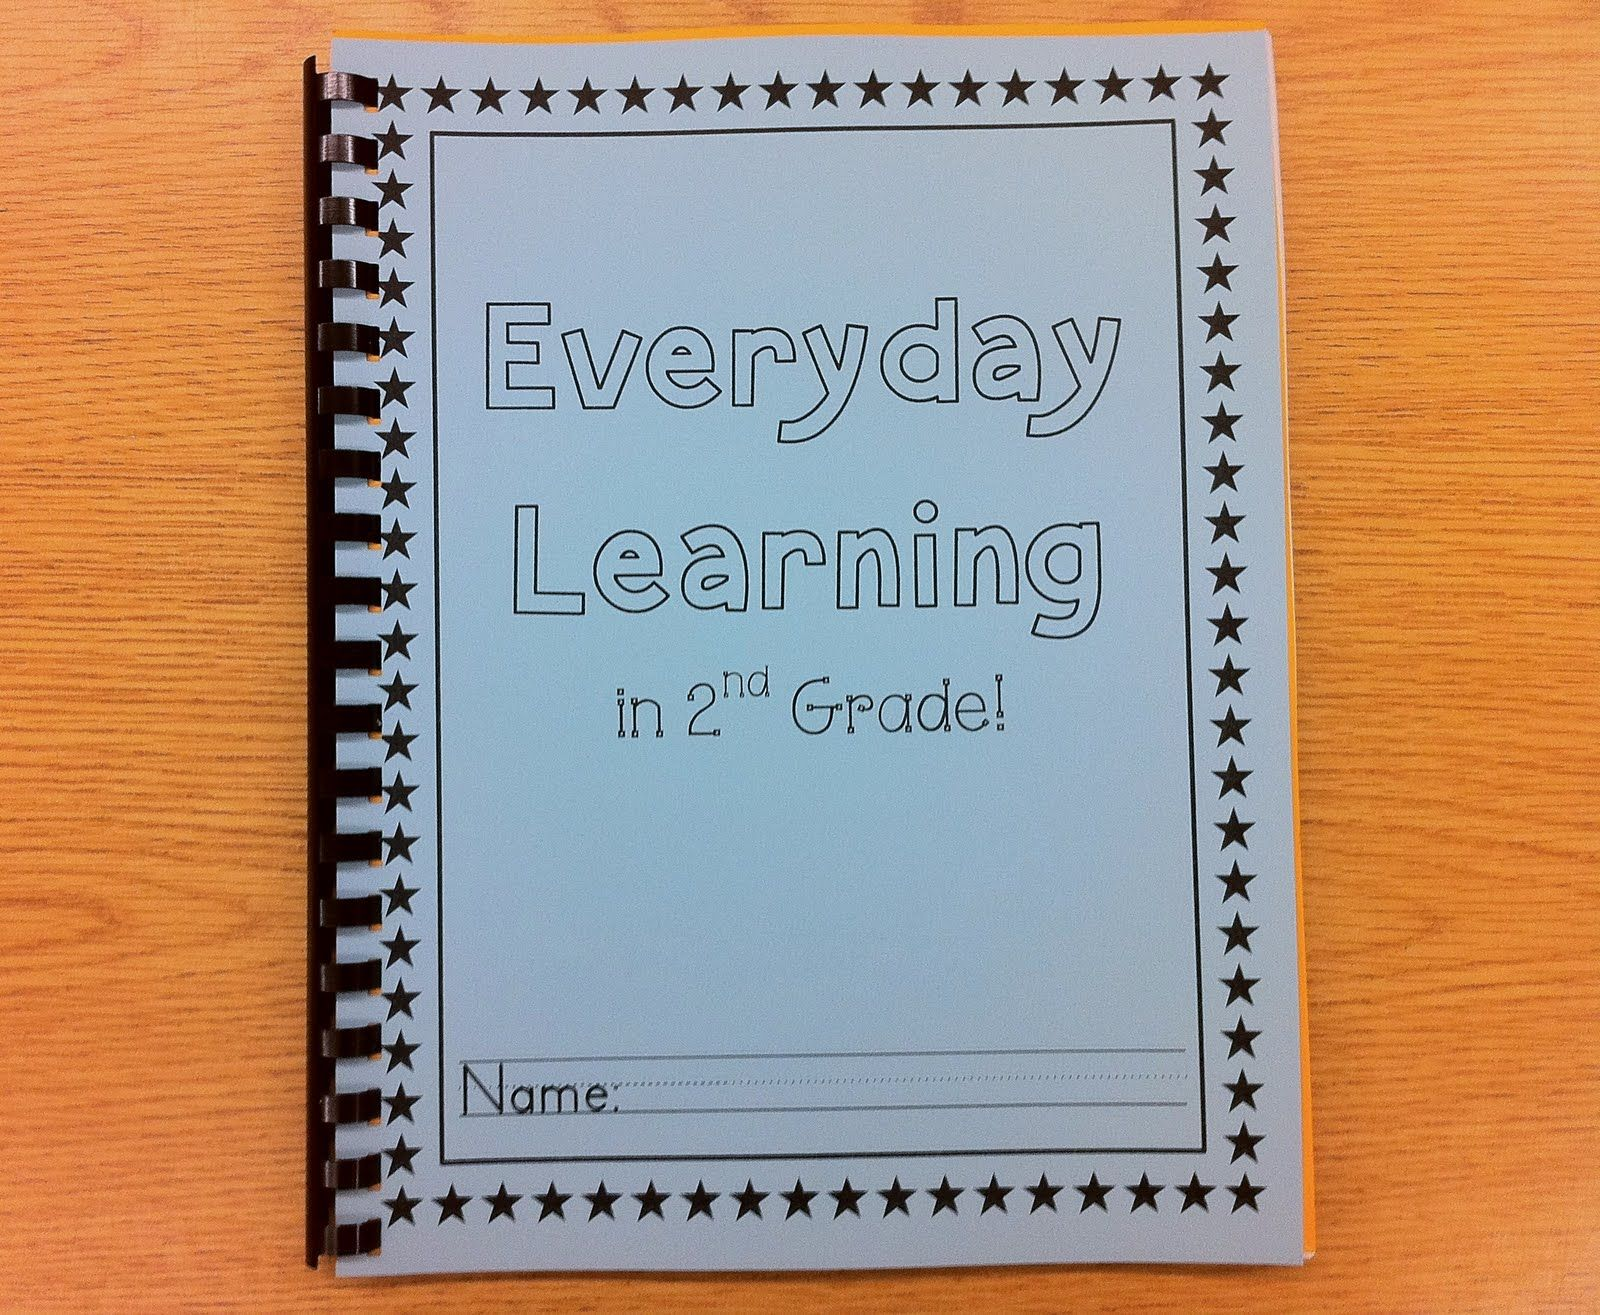 Everyday Learning Free Download